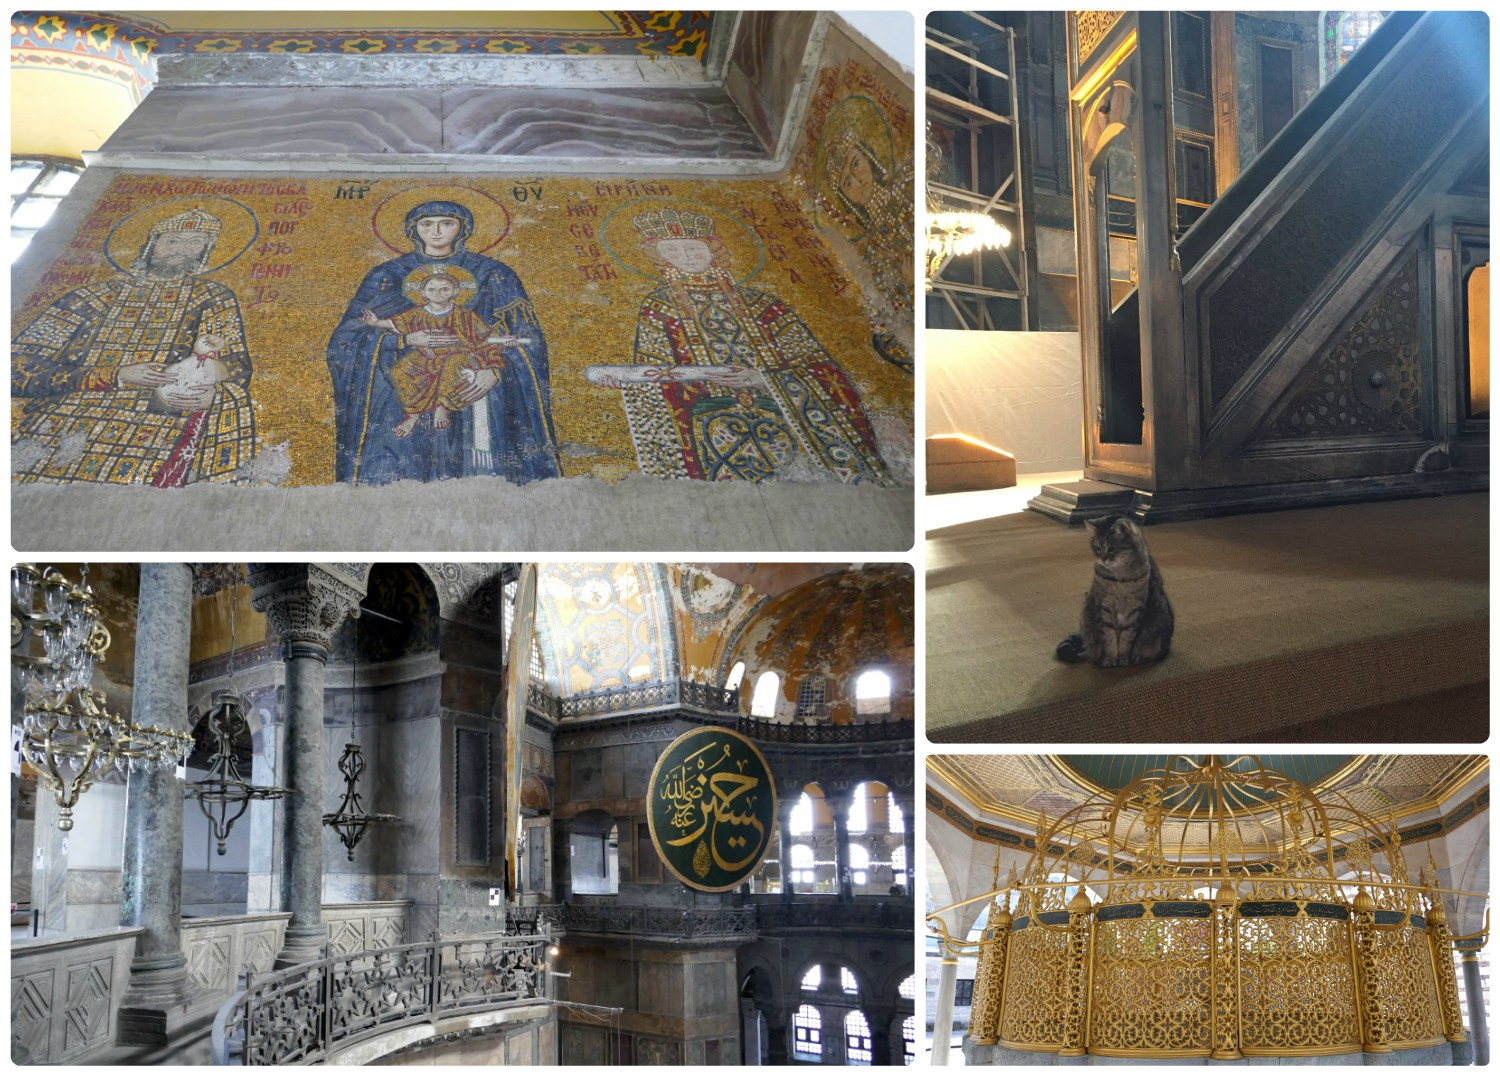 Clockwise: Intricate mosaic work that has been uncovered, cats are everywhere in Istanbul - even inside the Hagia Sophia, an ablution fountain in the courtyard of the Hagia Sophia, the view from the second floor of the Hagia Sophia.